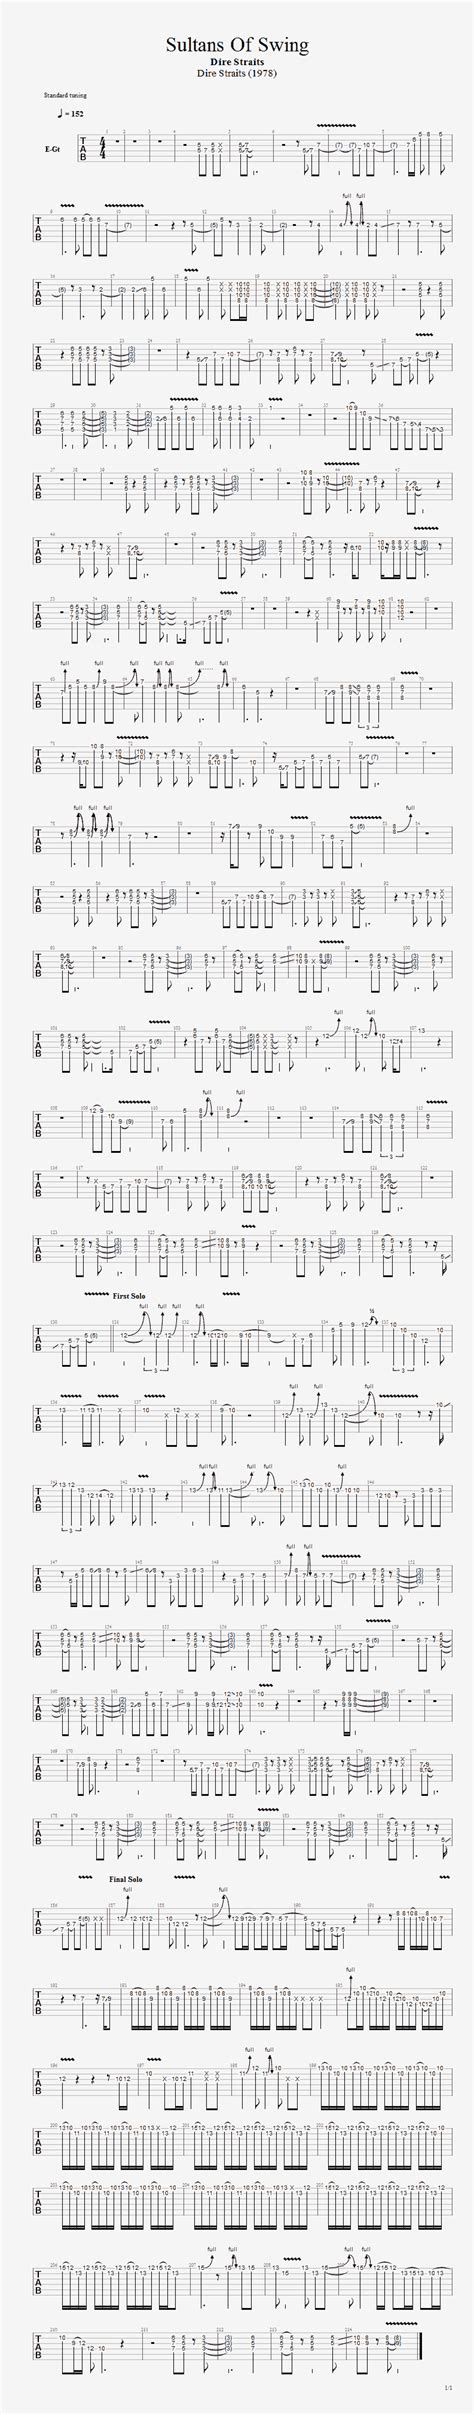 sultans of swing guitar solo sultans of swing guitar tab guitarnick com